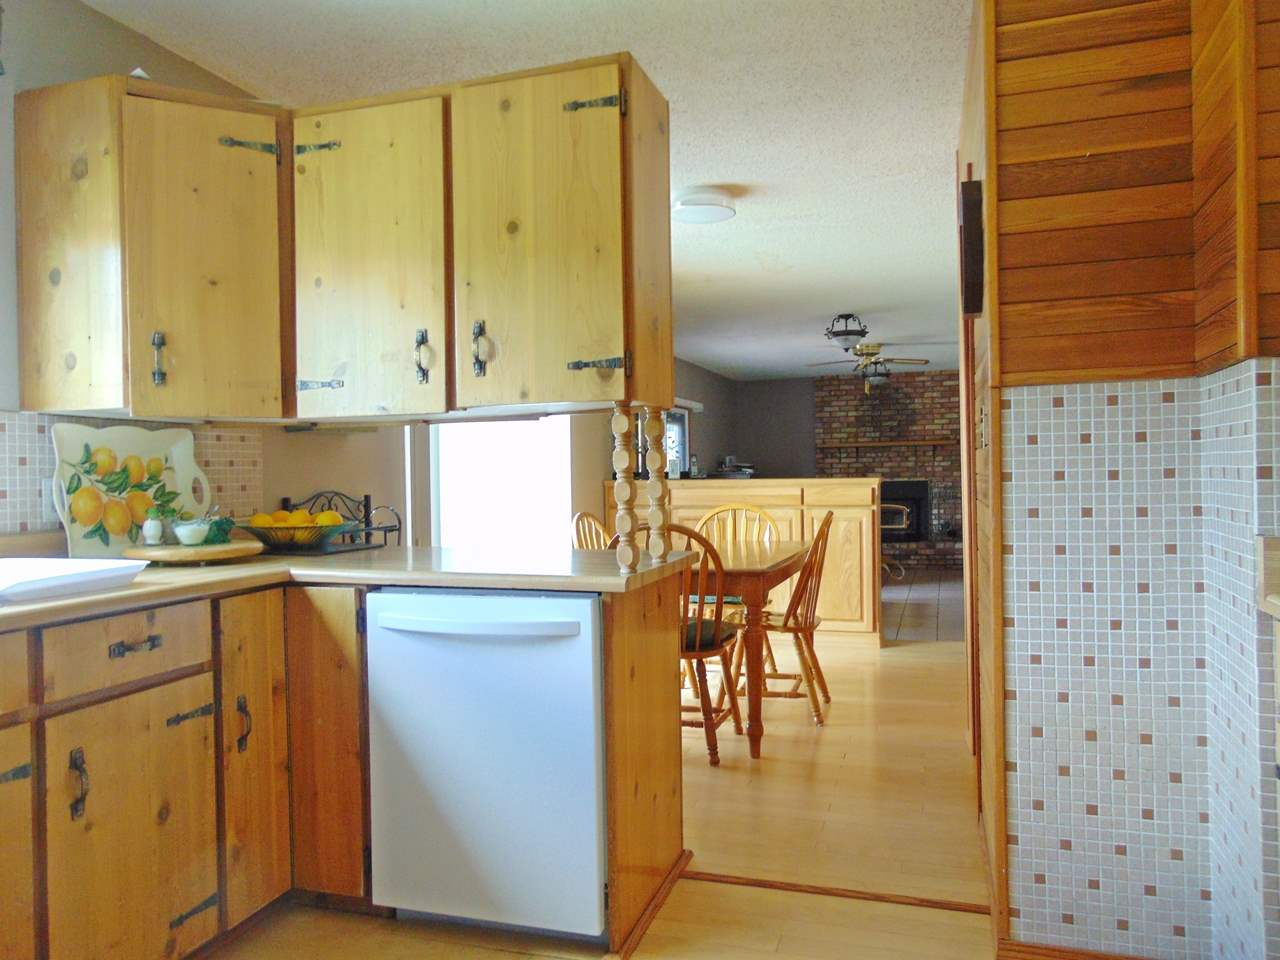 Photo 12: 57130 Rg Rd 230: Rural Sturgeon County House for sale : MLS(r) # E4064722